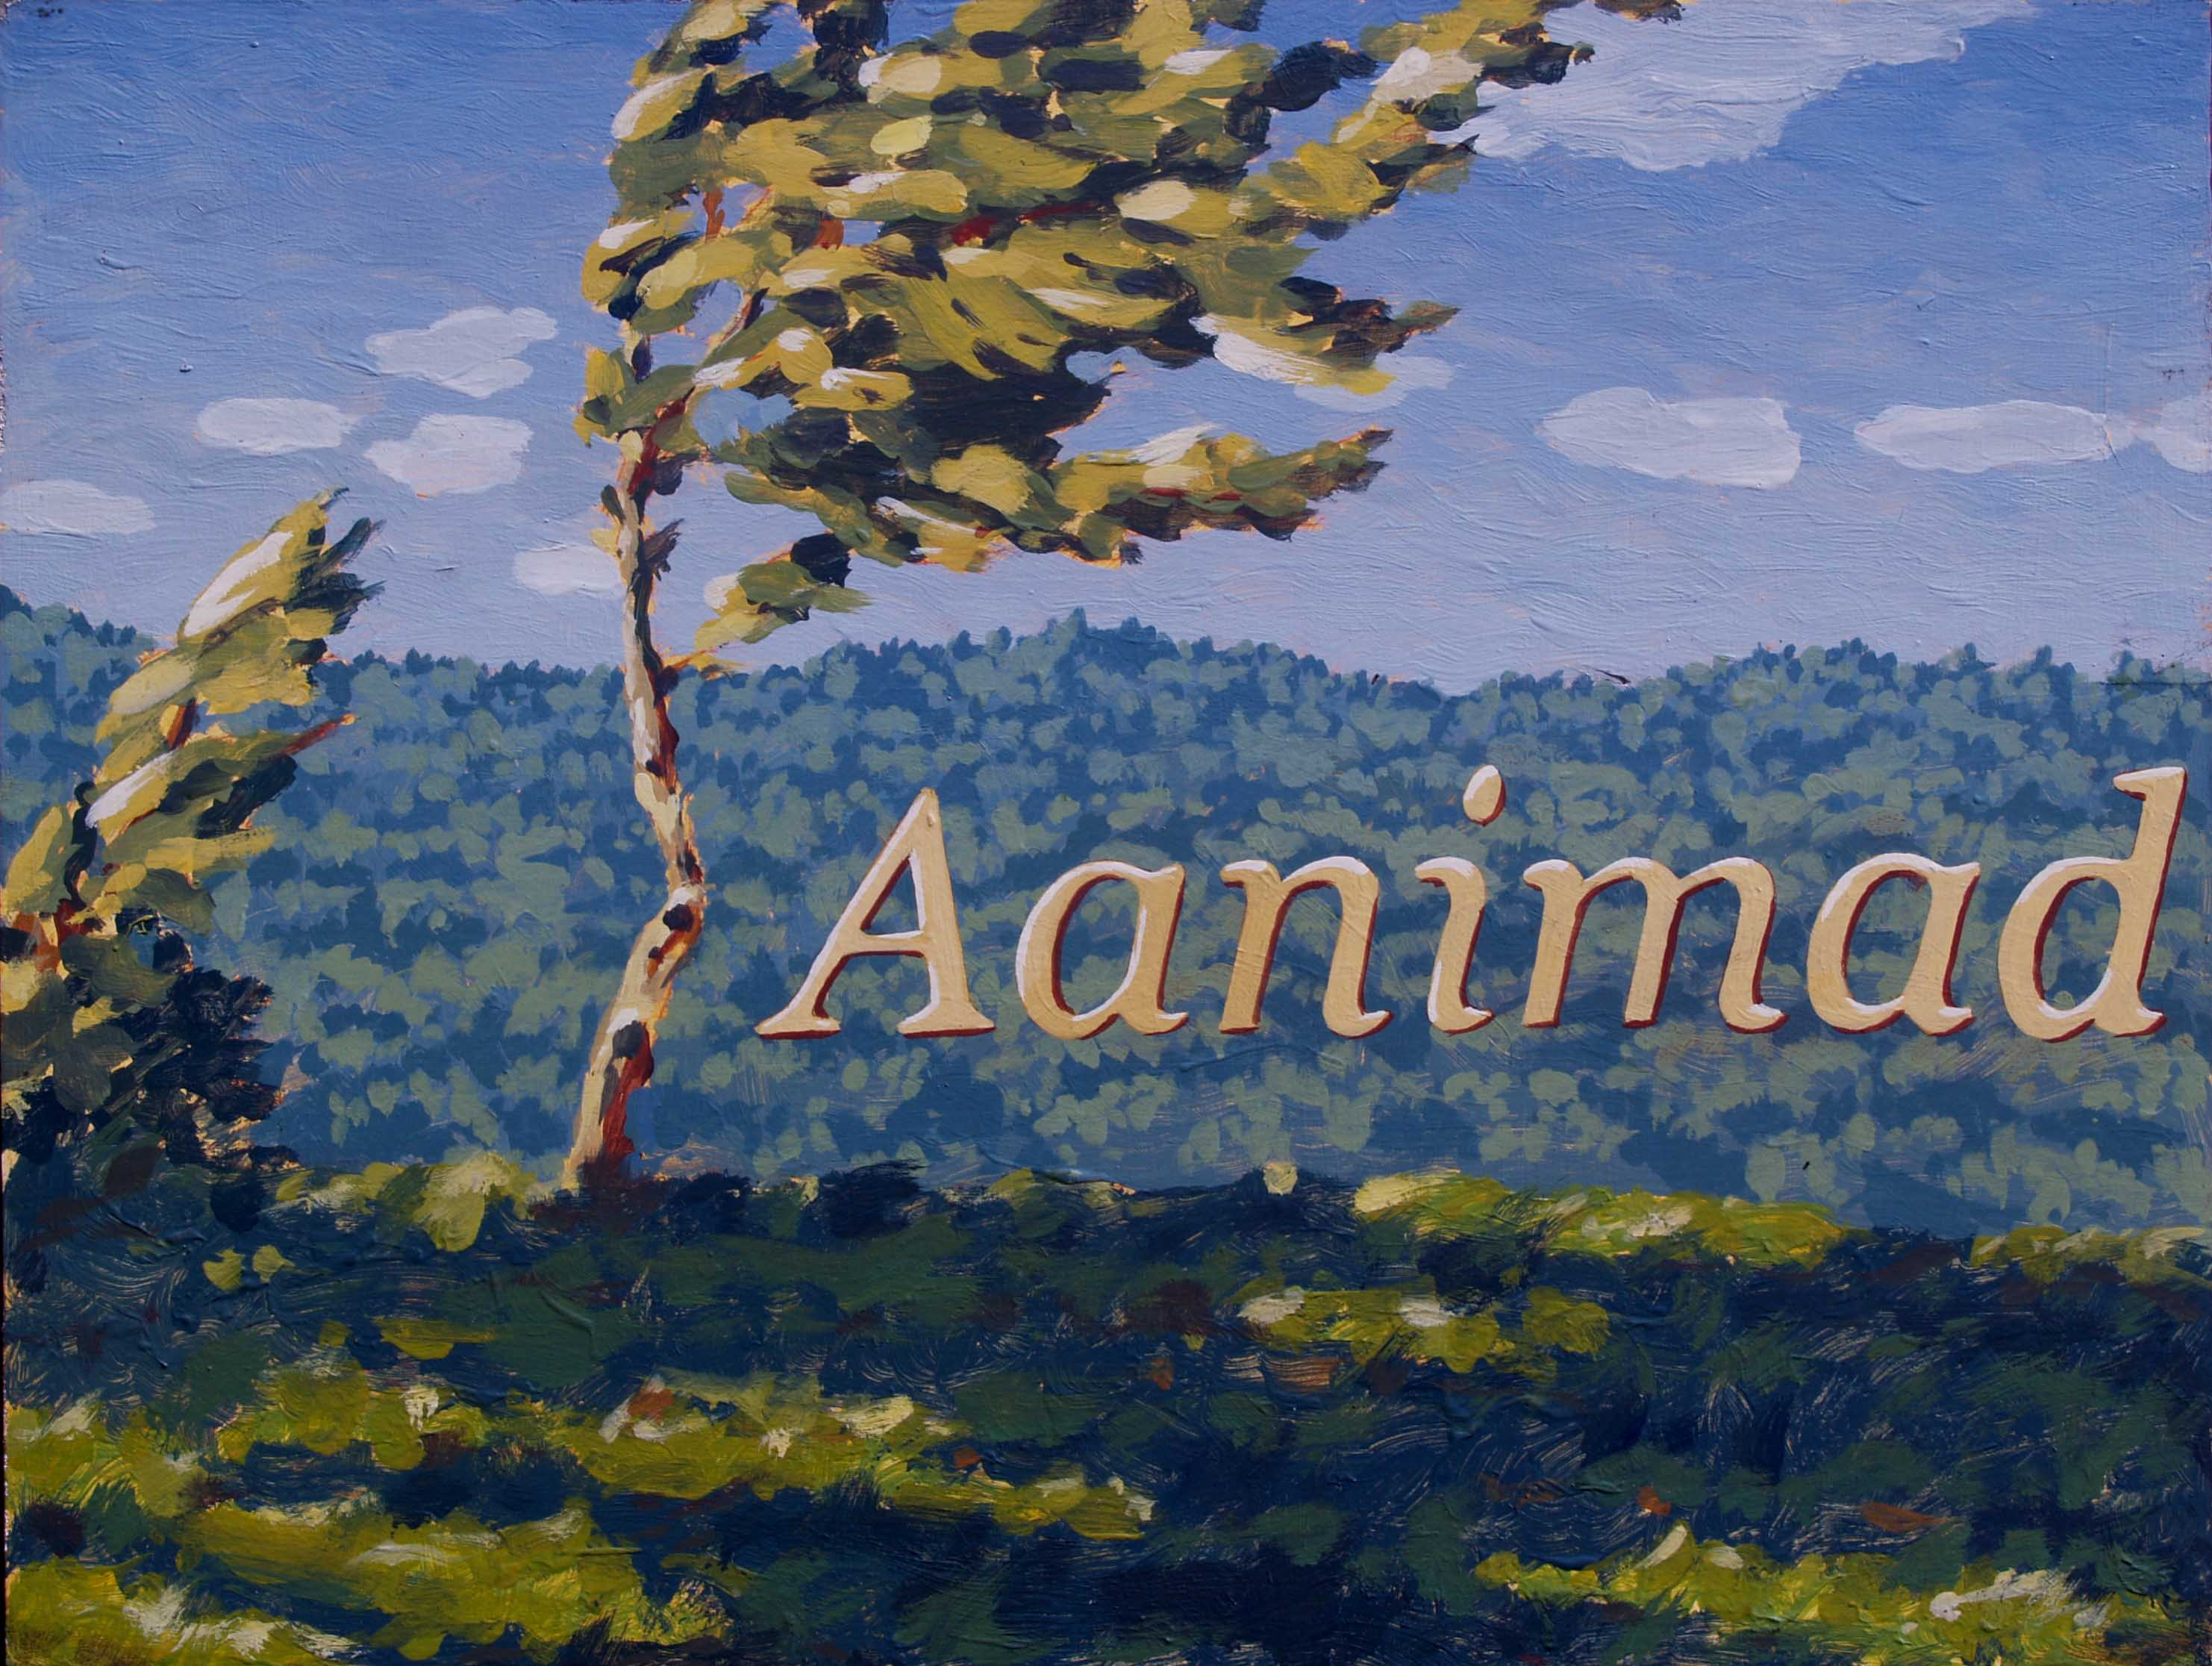 Aanimad - Home of Andrew & Elswyth